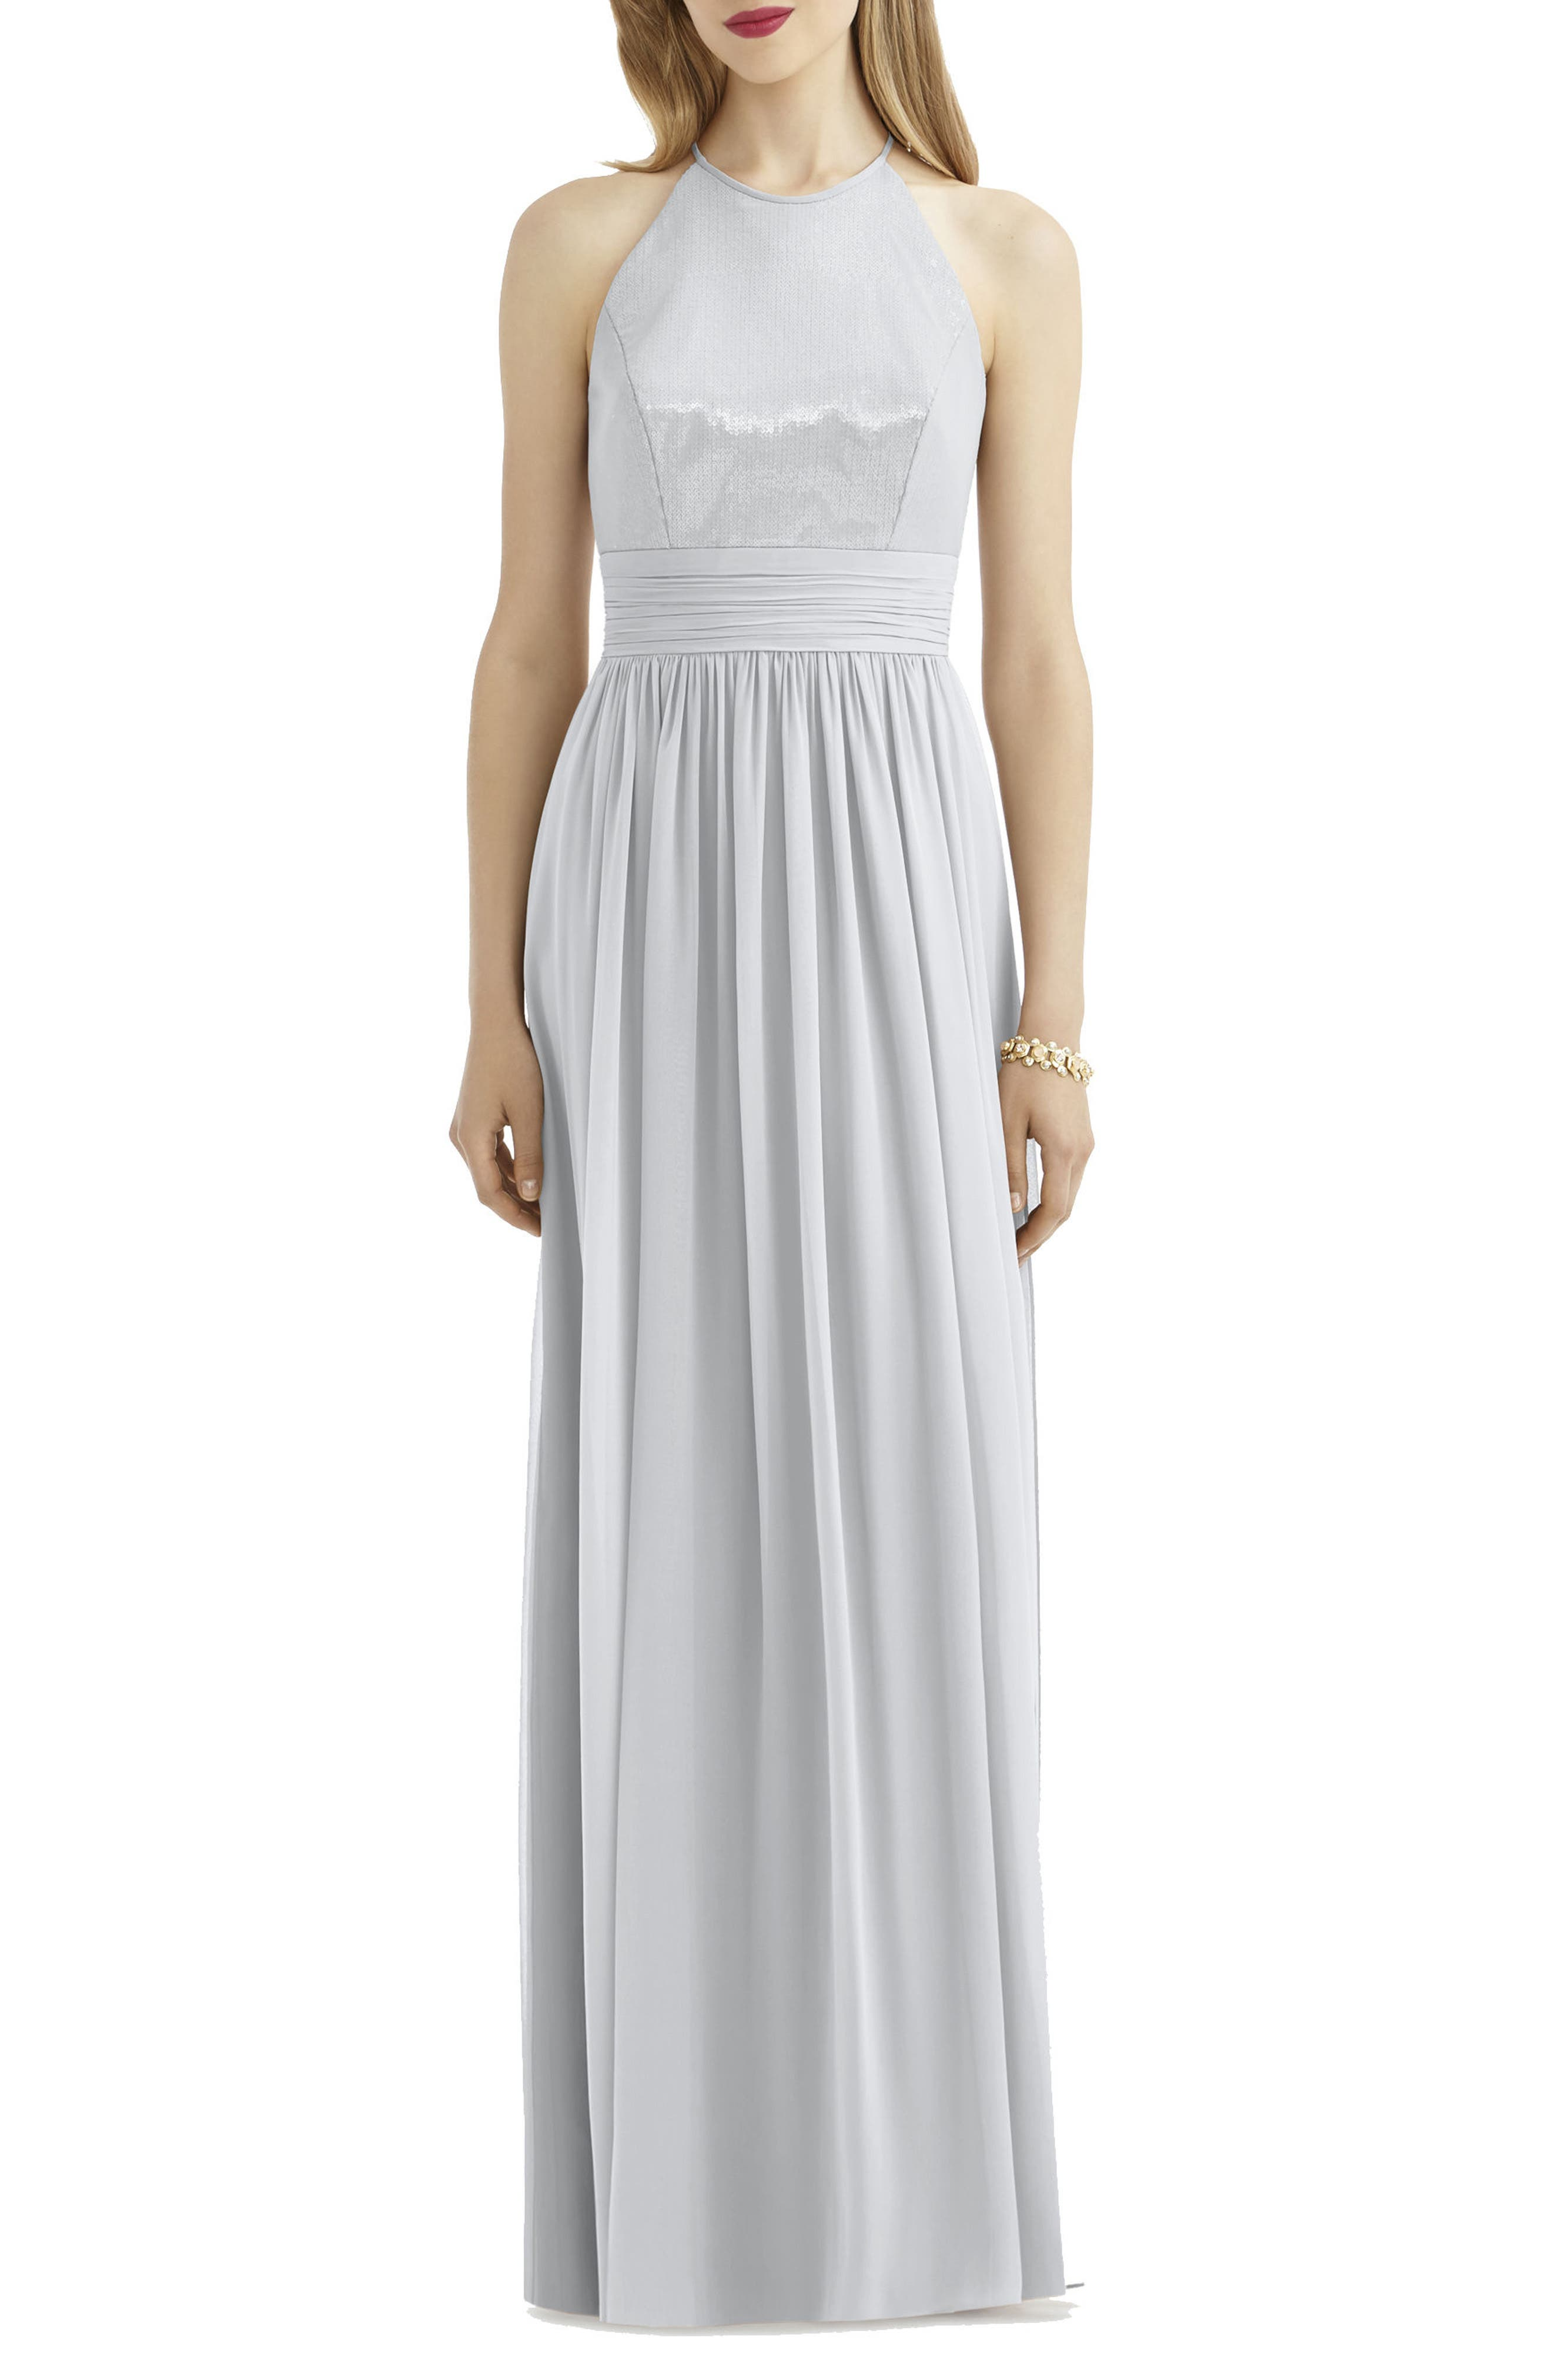 AFTER SIX, Sequin Open Back Chiffon Gown, Main thumbnail 1, color, FROST